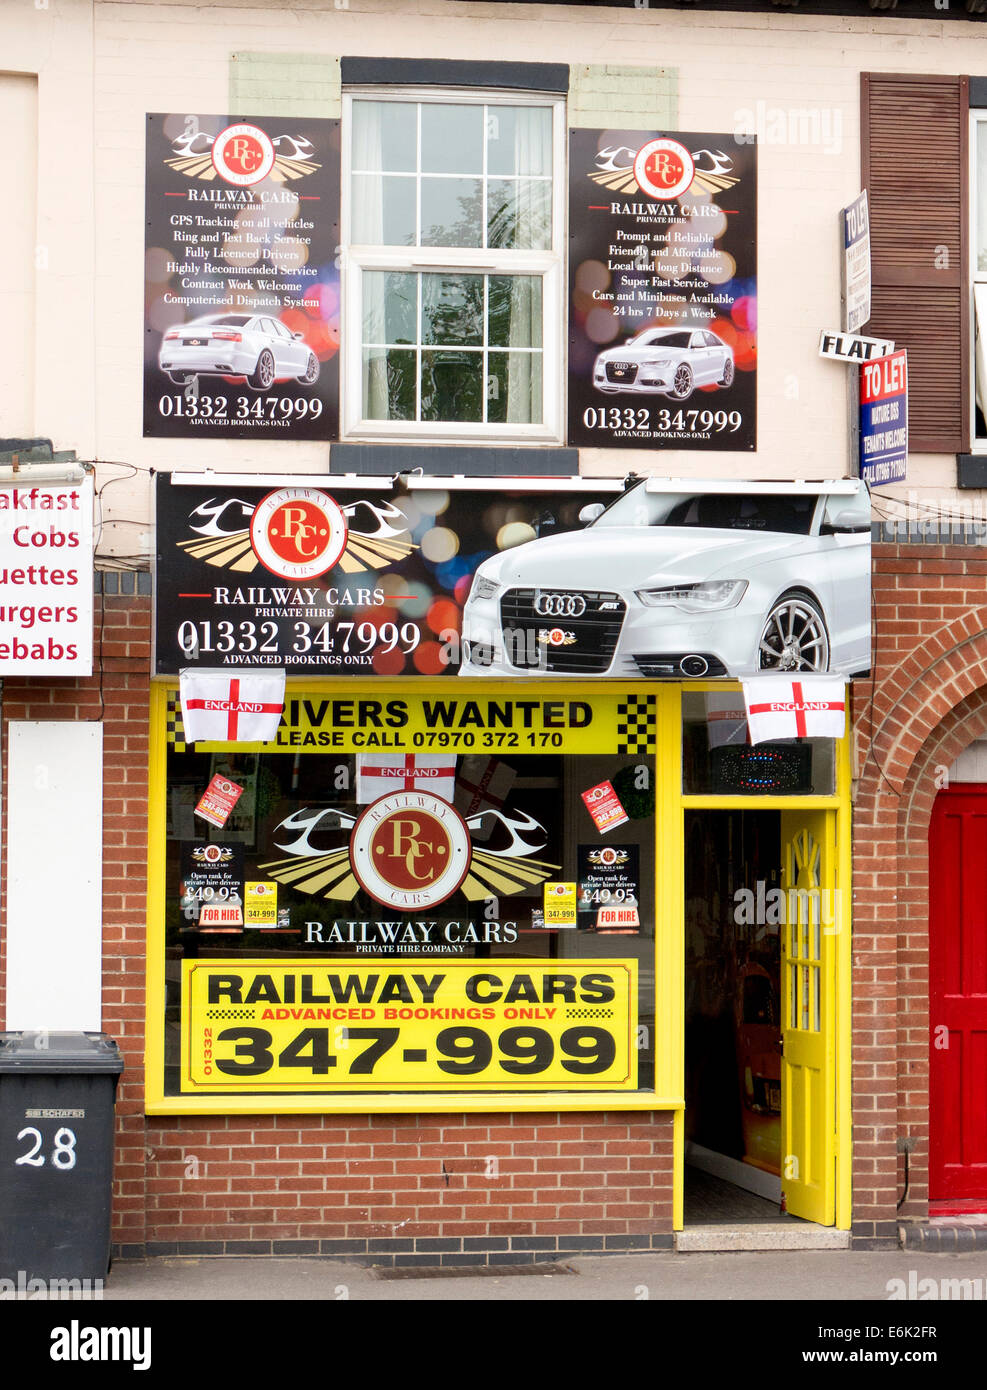 Exterior front of 24 hour minicab company in Derby Stock Photo